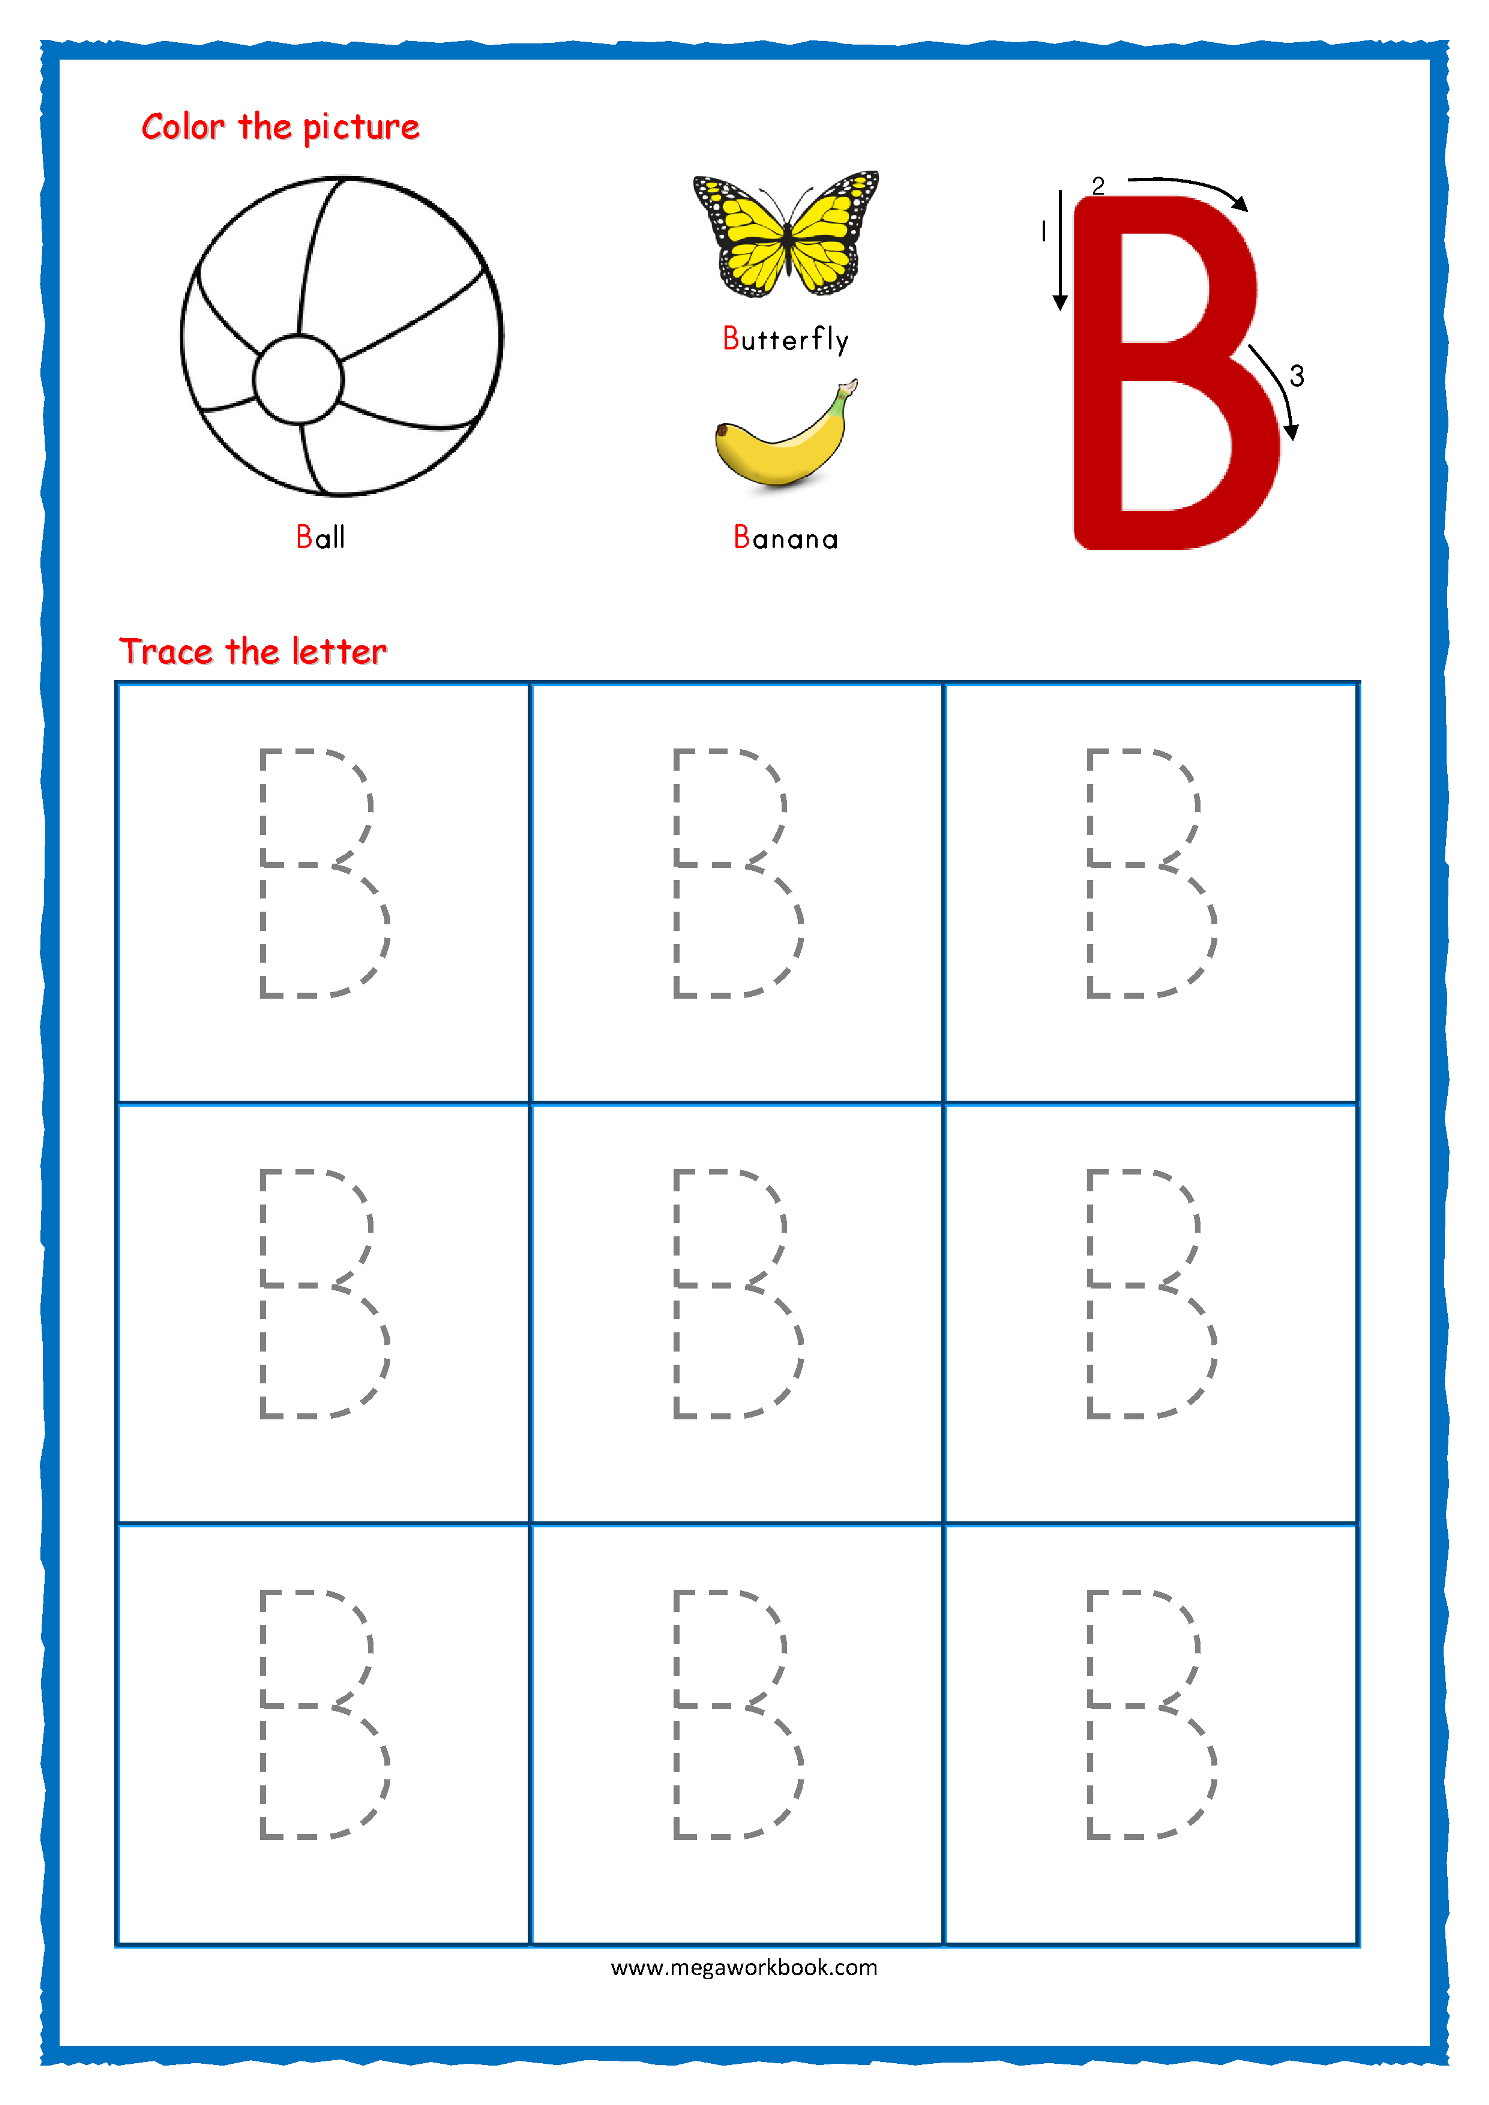 Coloring Book : Letter Tracingts Free Printable Coloring intended for Letters For Tracing Kindergarten